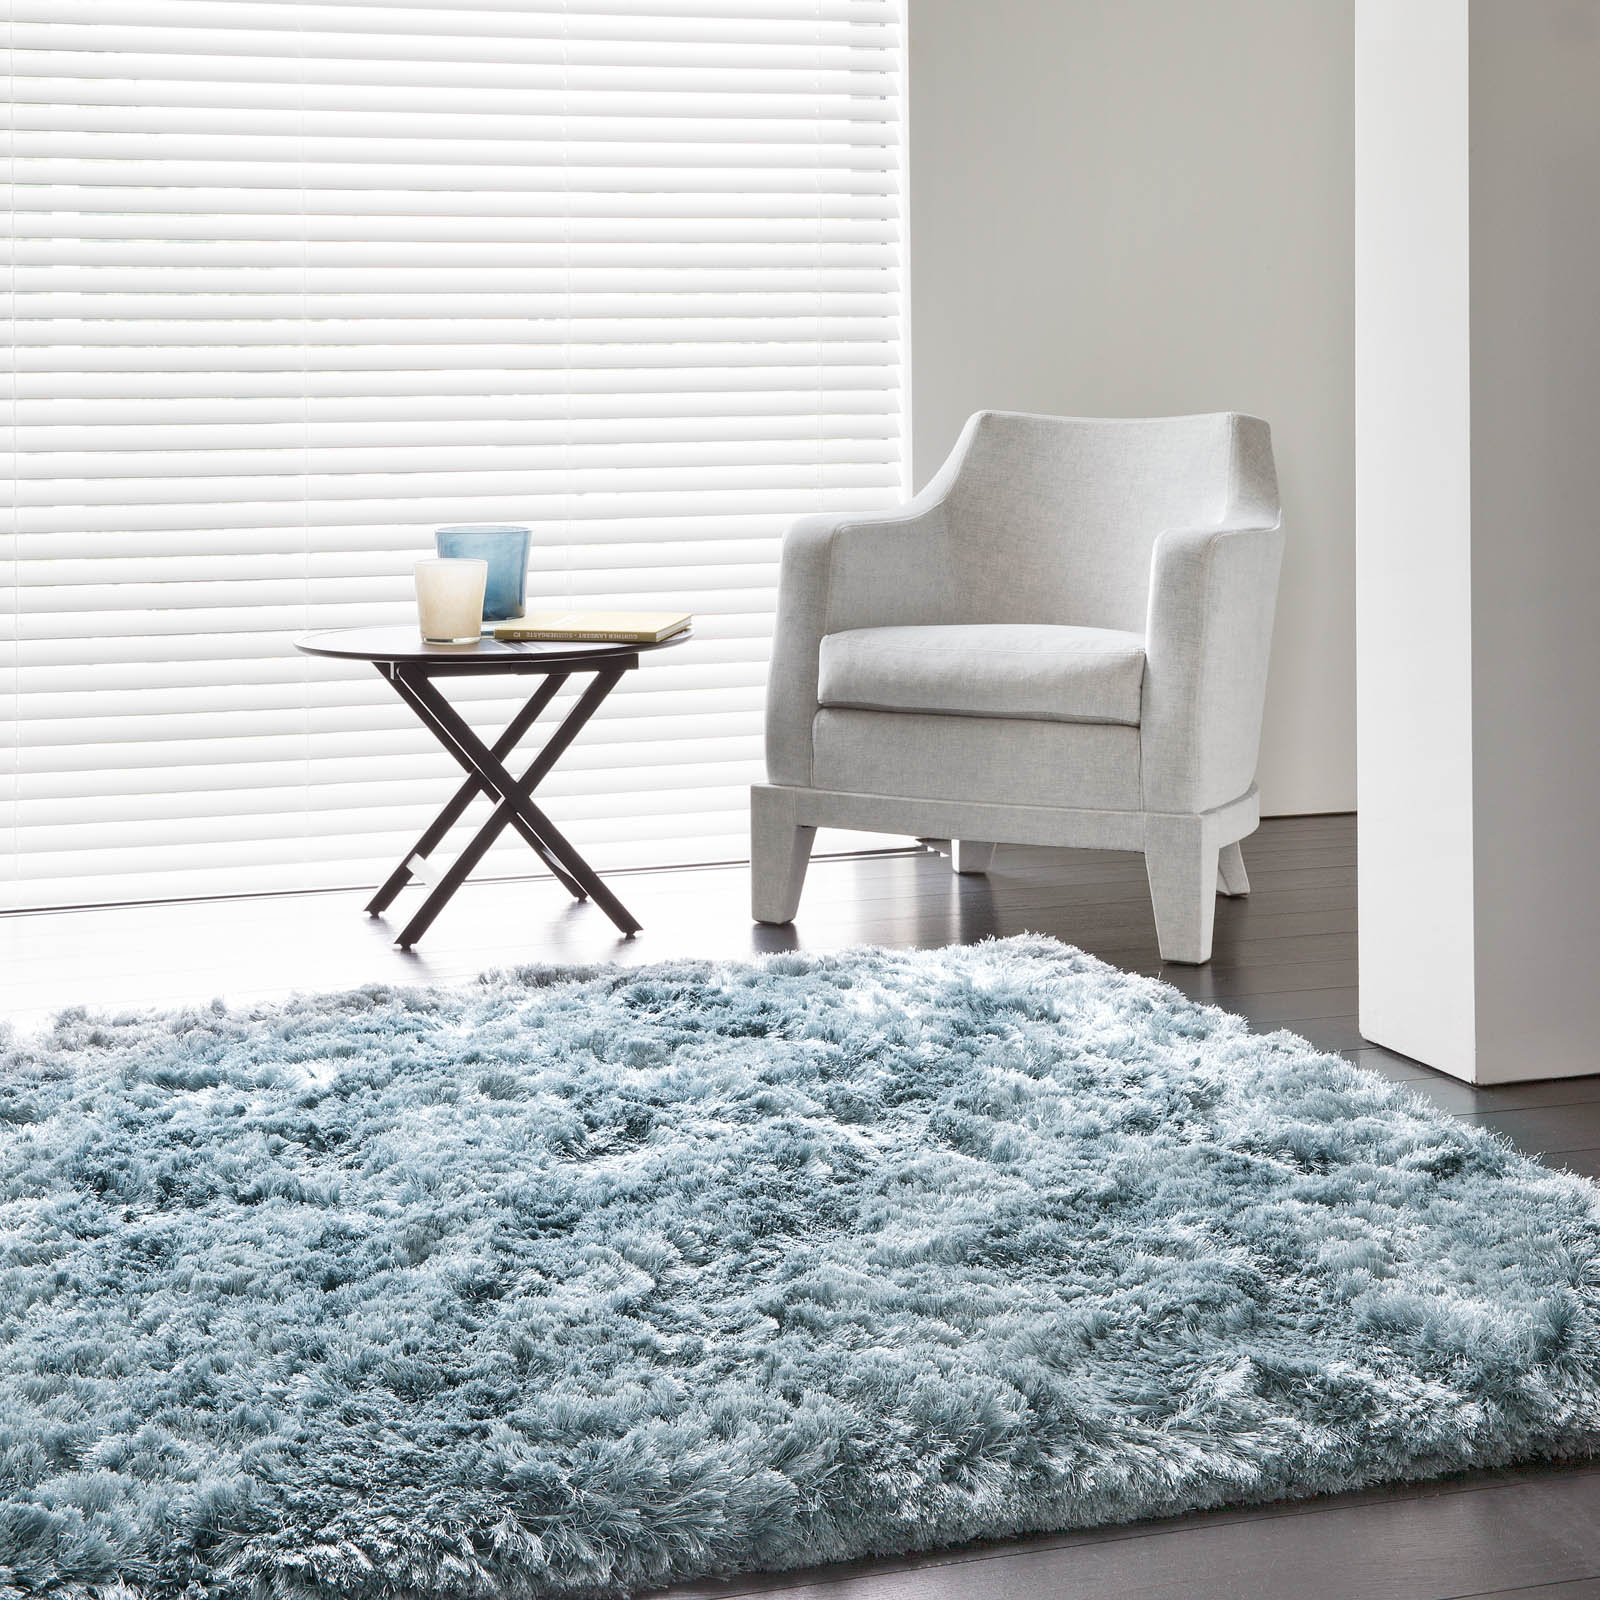 Uni Adore Shaggy Rugs 207 001 500 in Blue by Ligne Pure